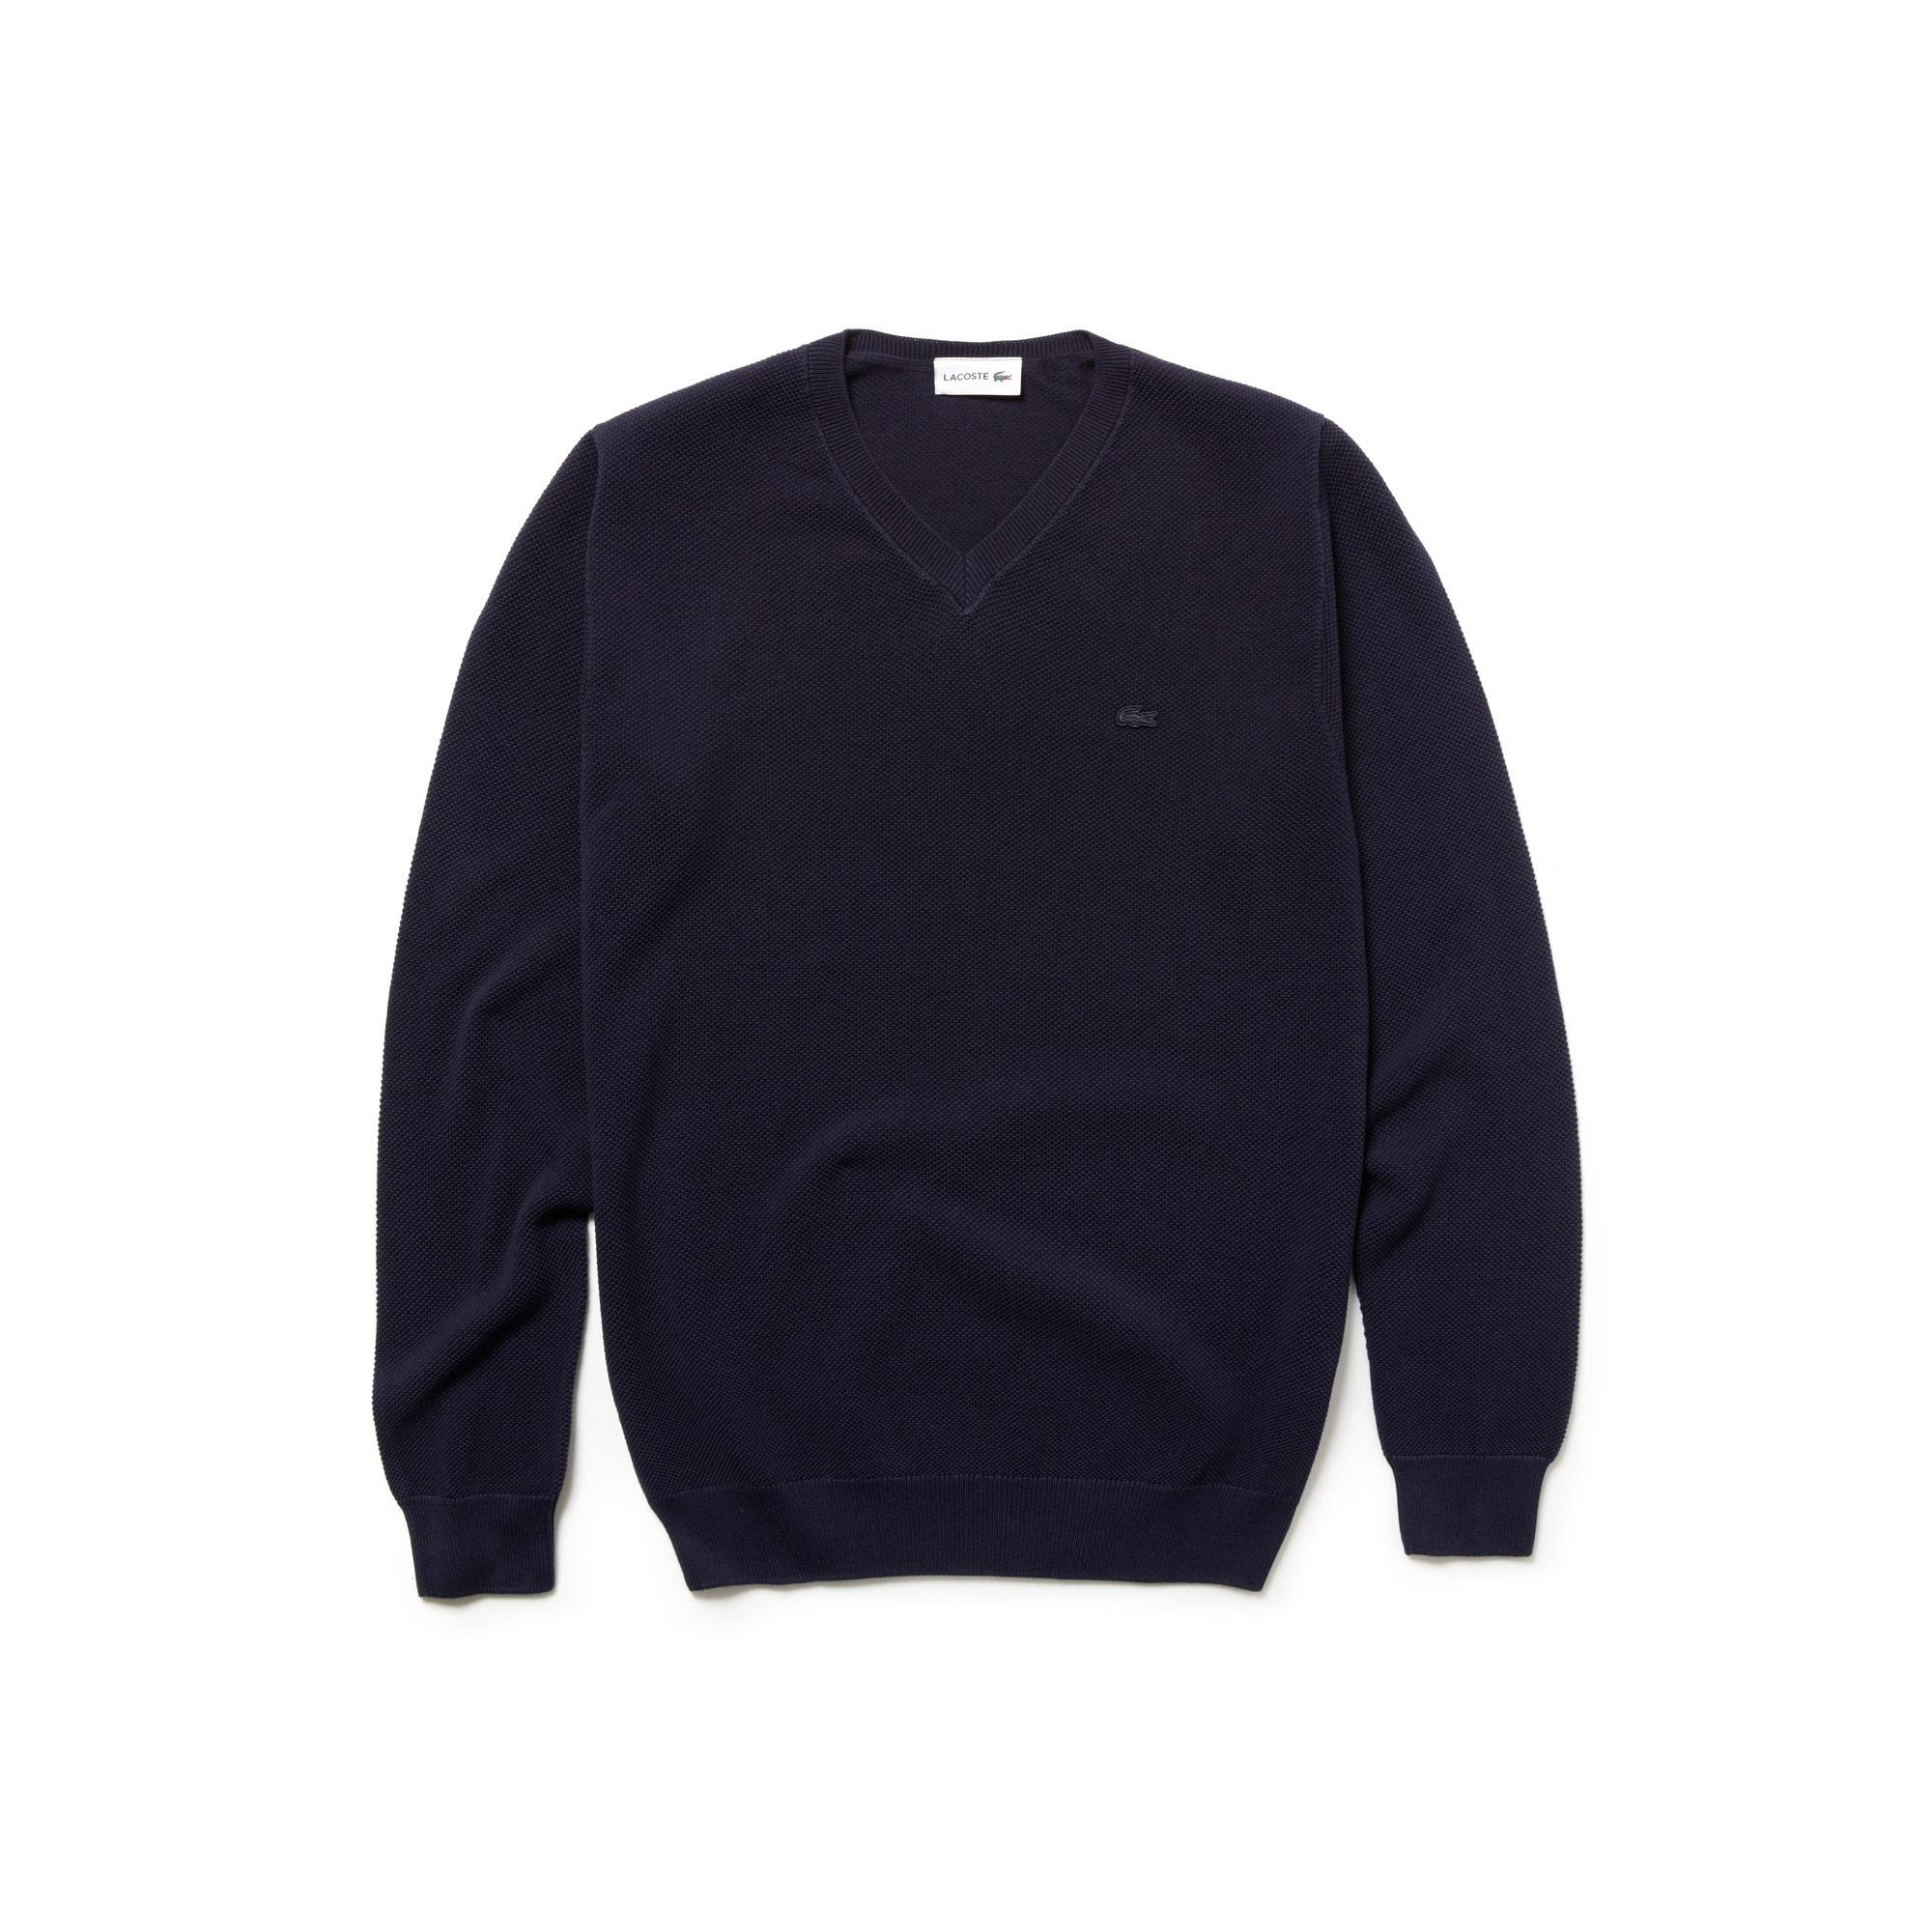 Lacoste Men's V-Neck Cotton Piqué Sweater